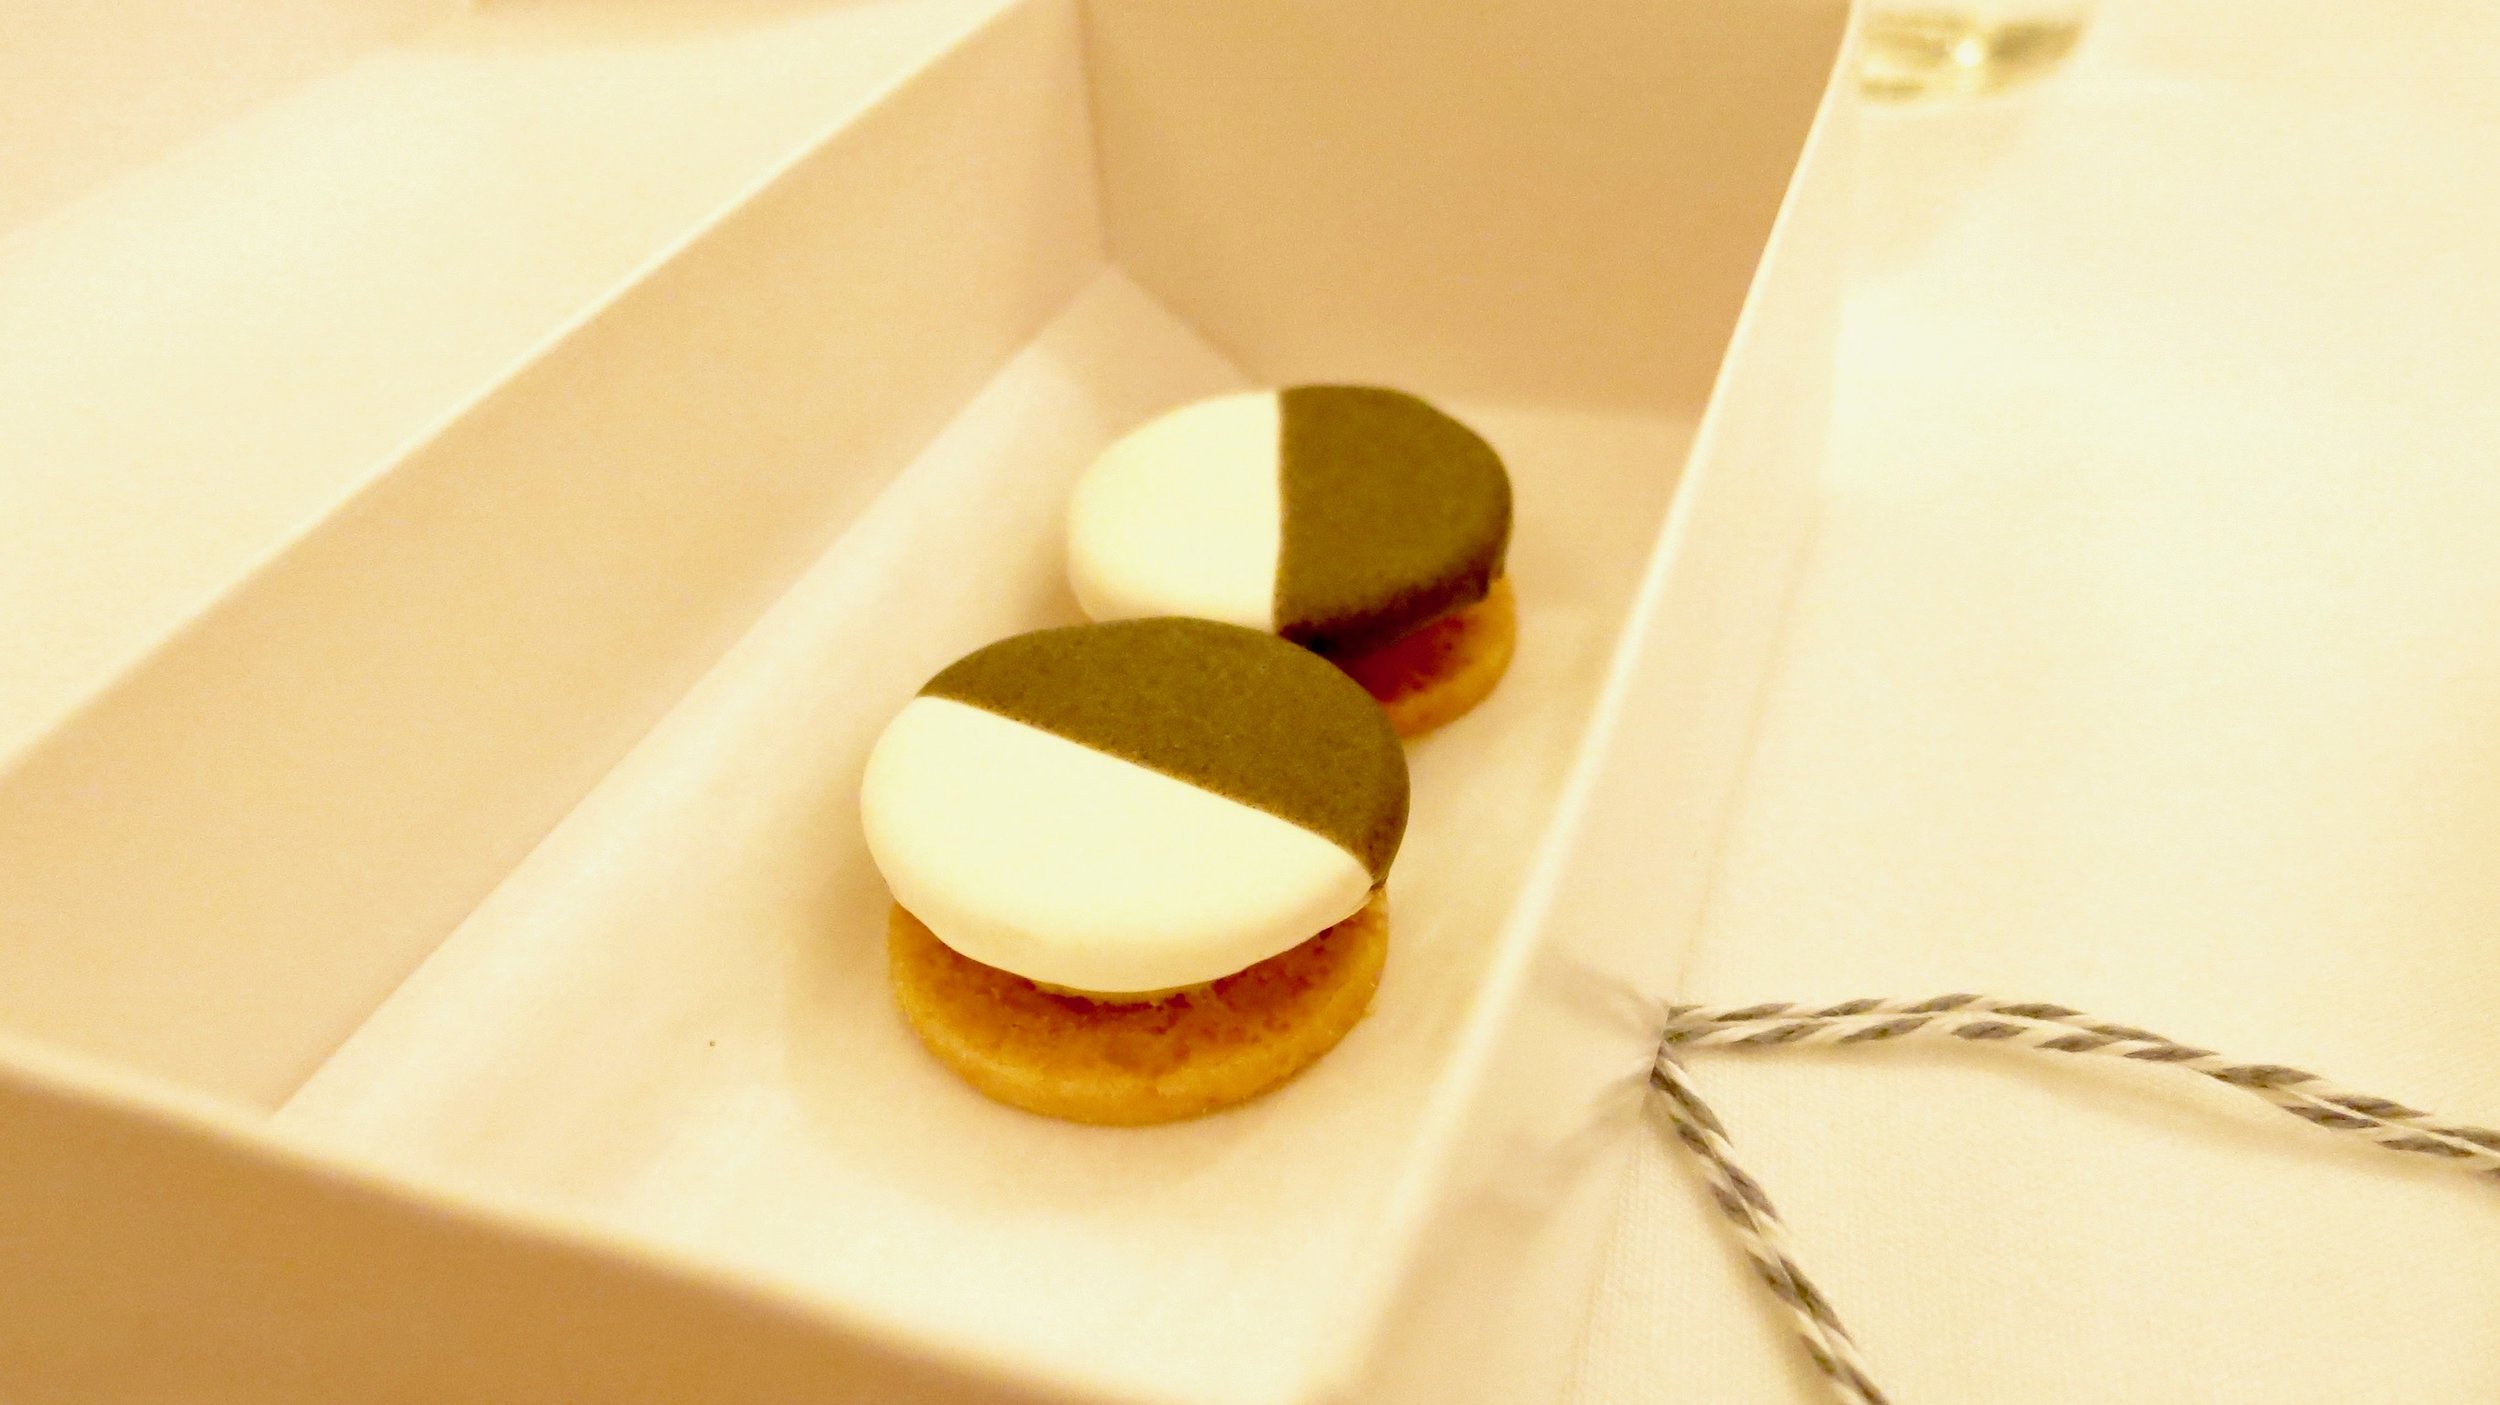 (Inside the box ) Cheddar: Savory Black and White Cookie with Apple (Lovely Start)